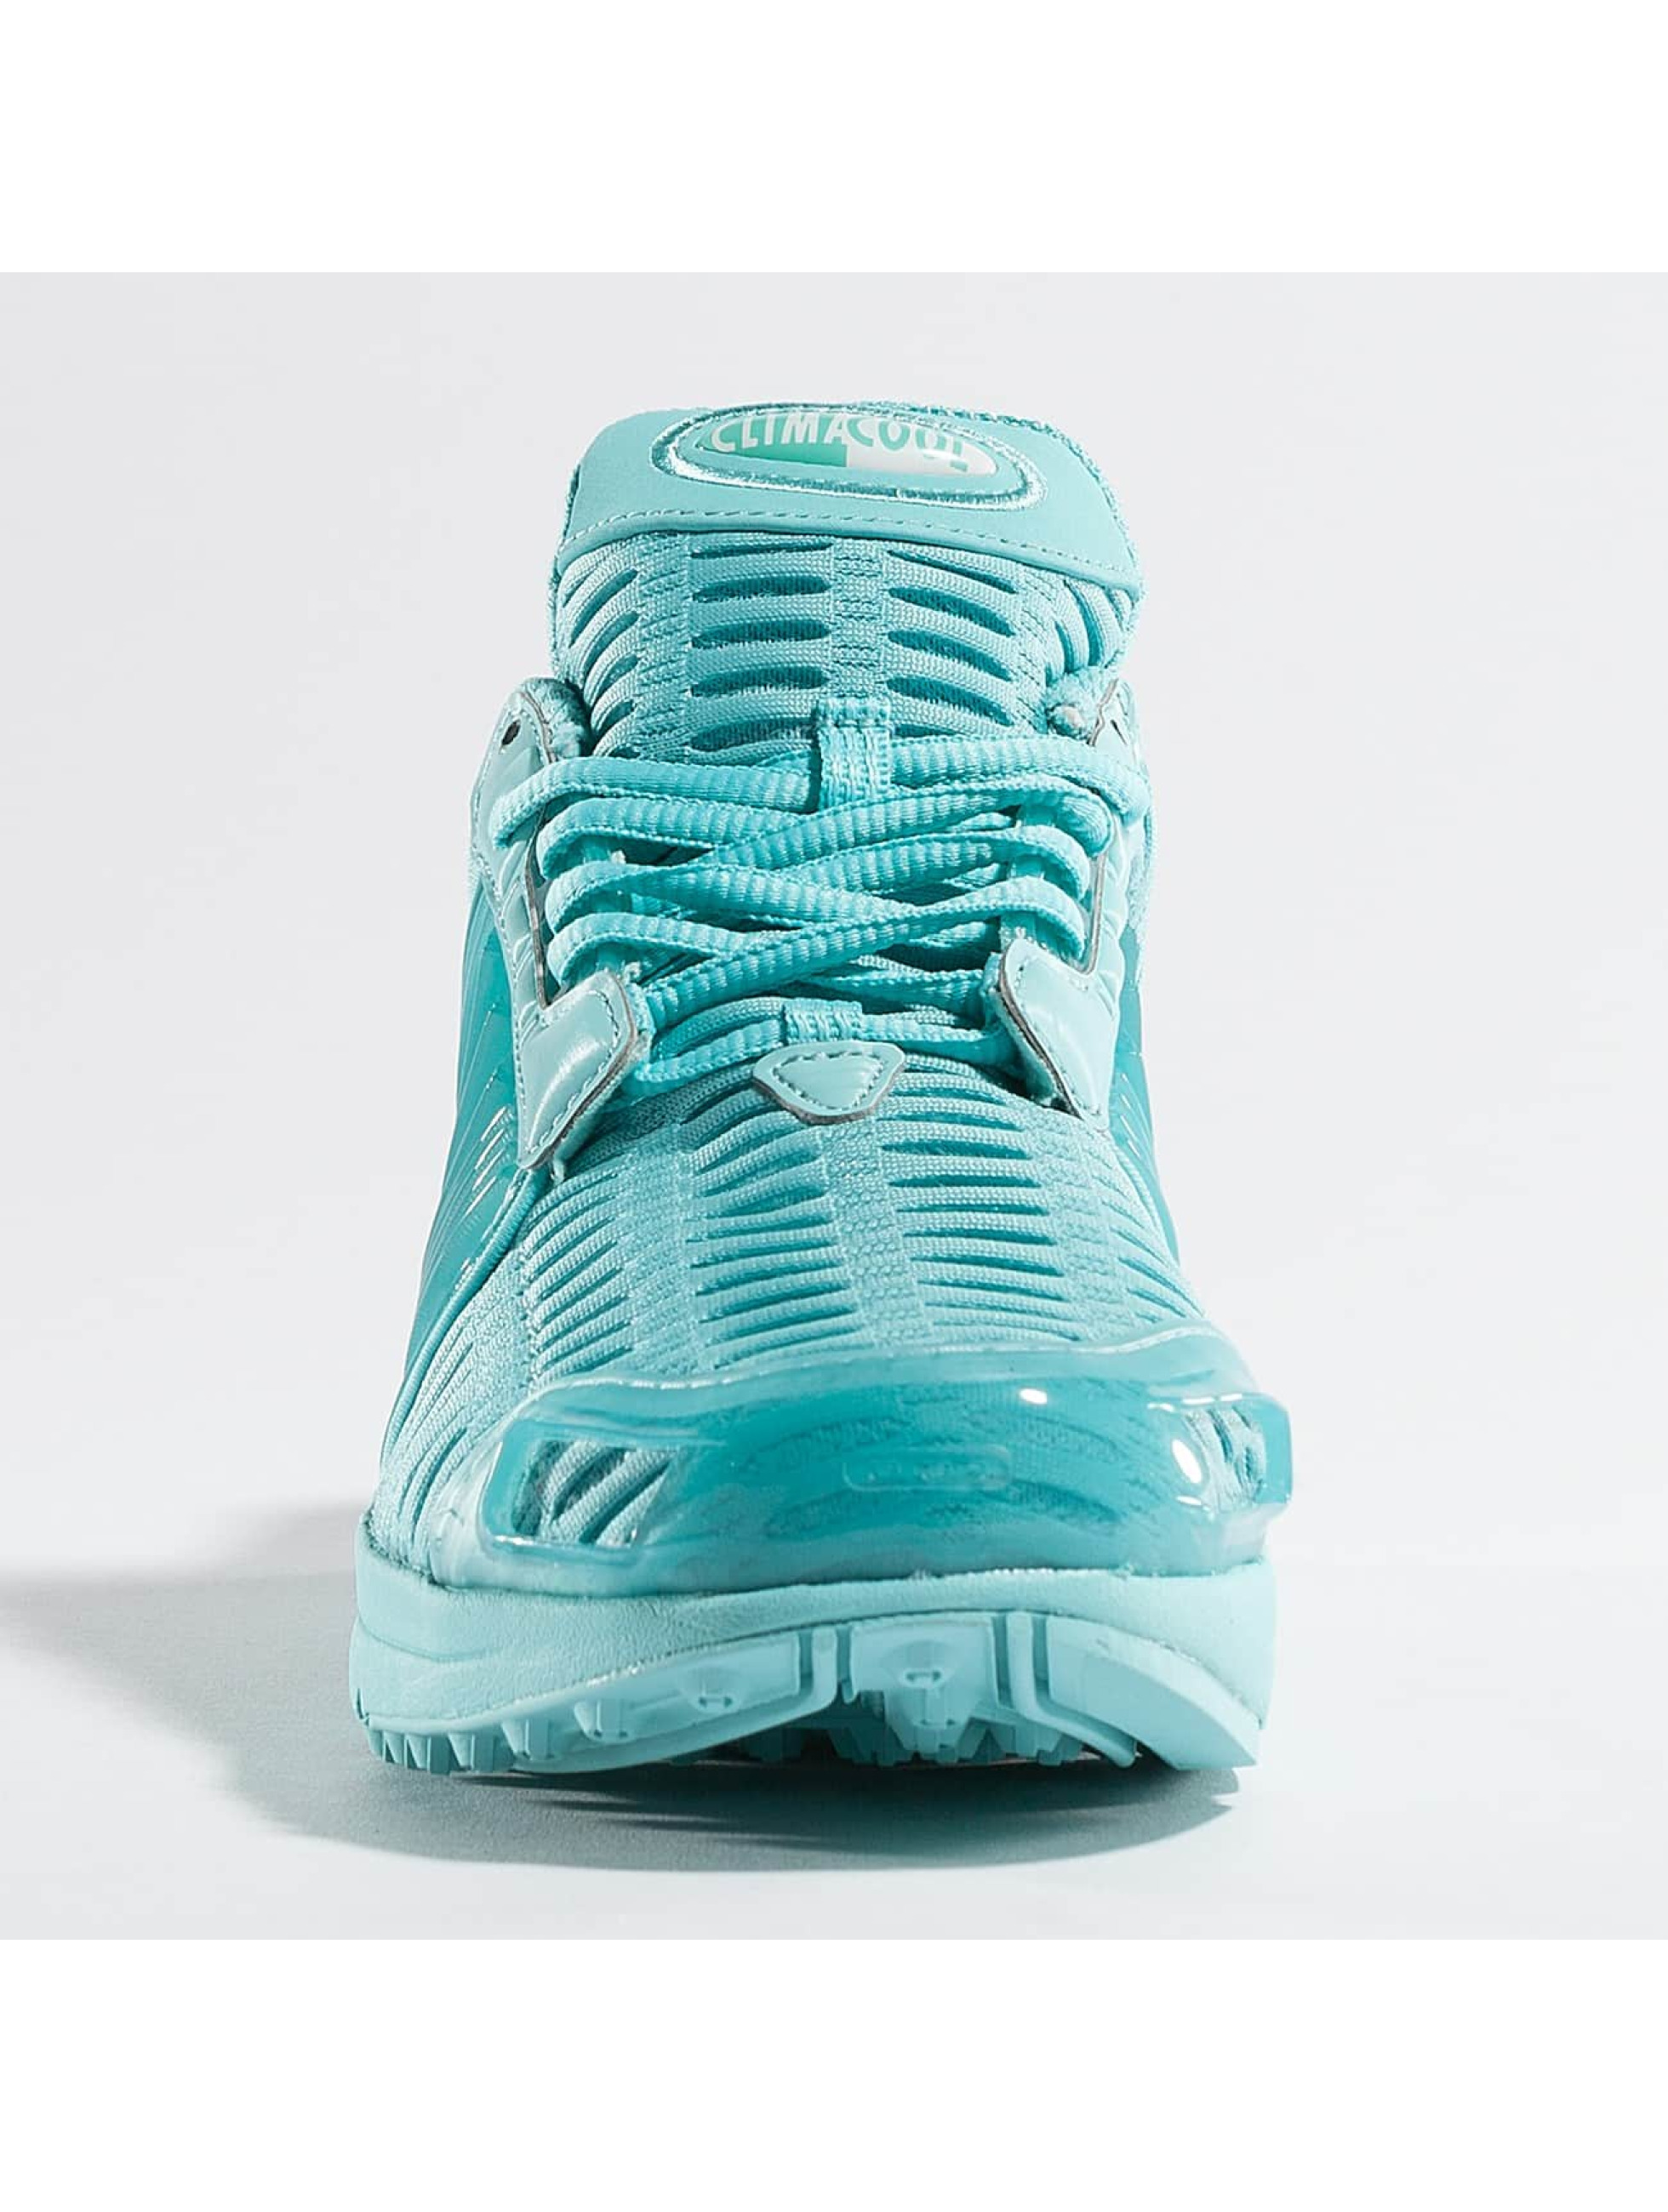 adidas Sneakers Climacool green